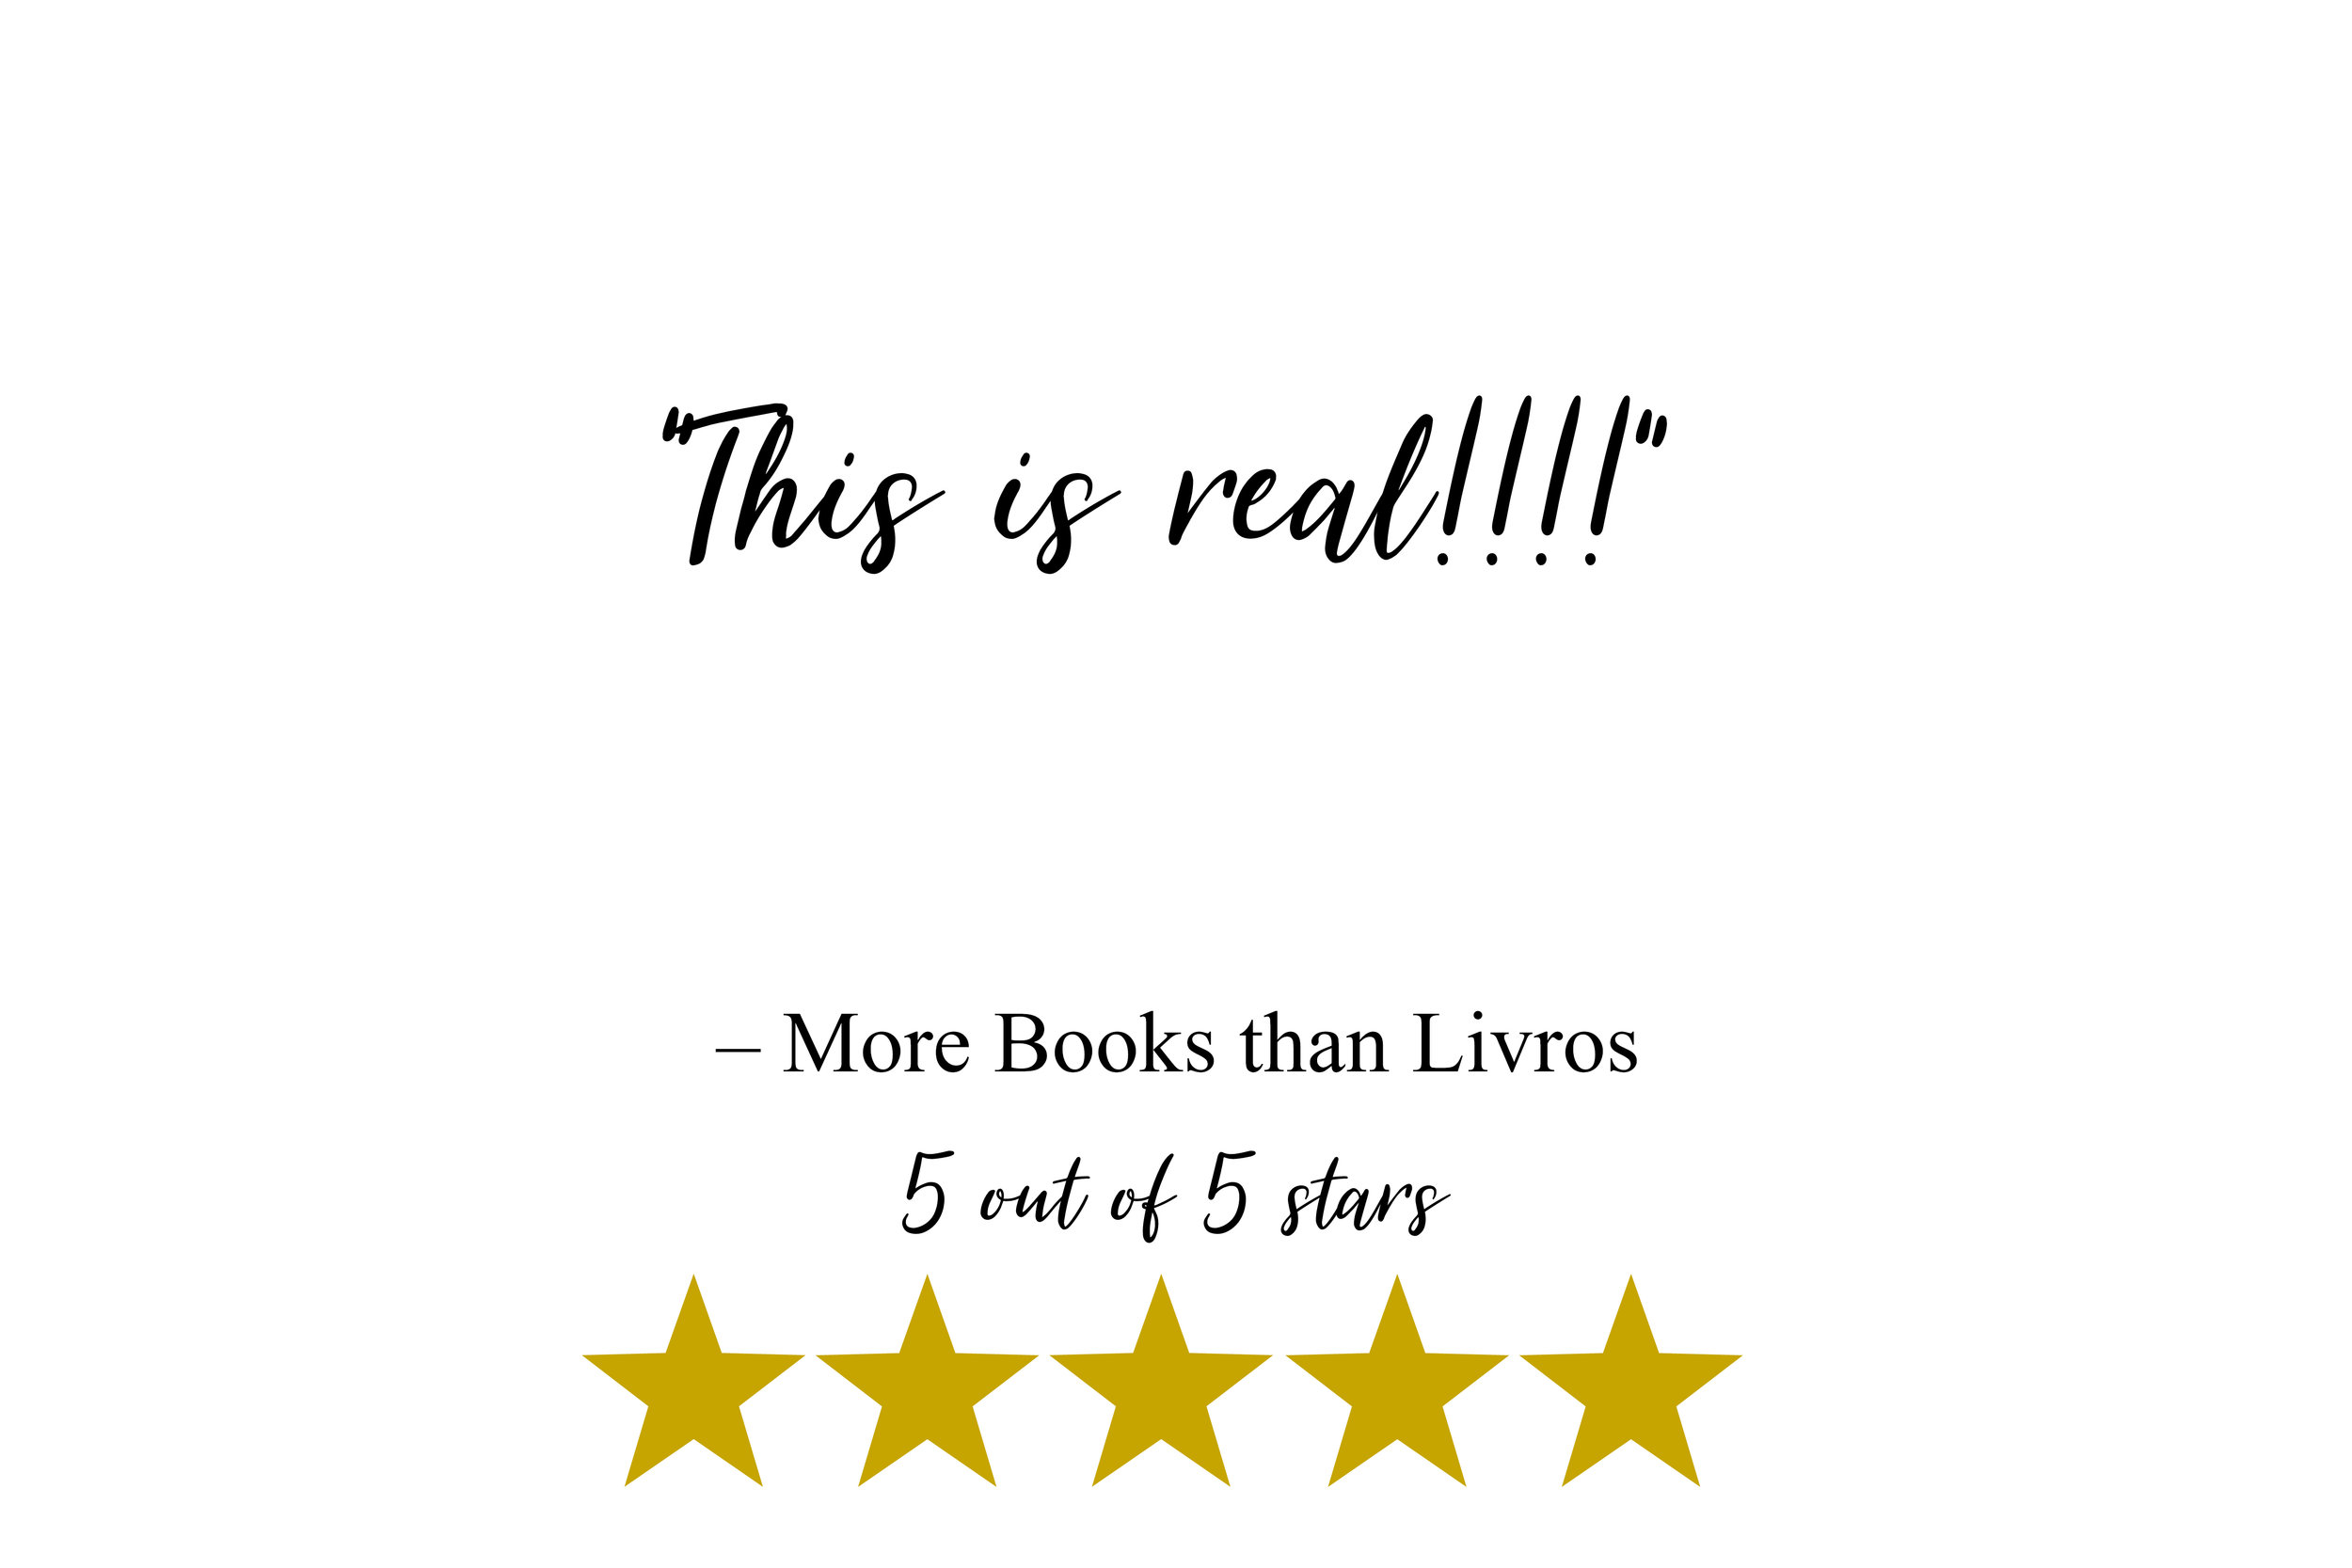 """This is real!!!!"" - More Books than Livros Review"